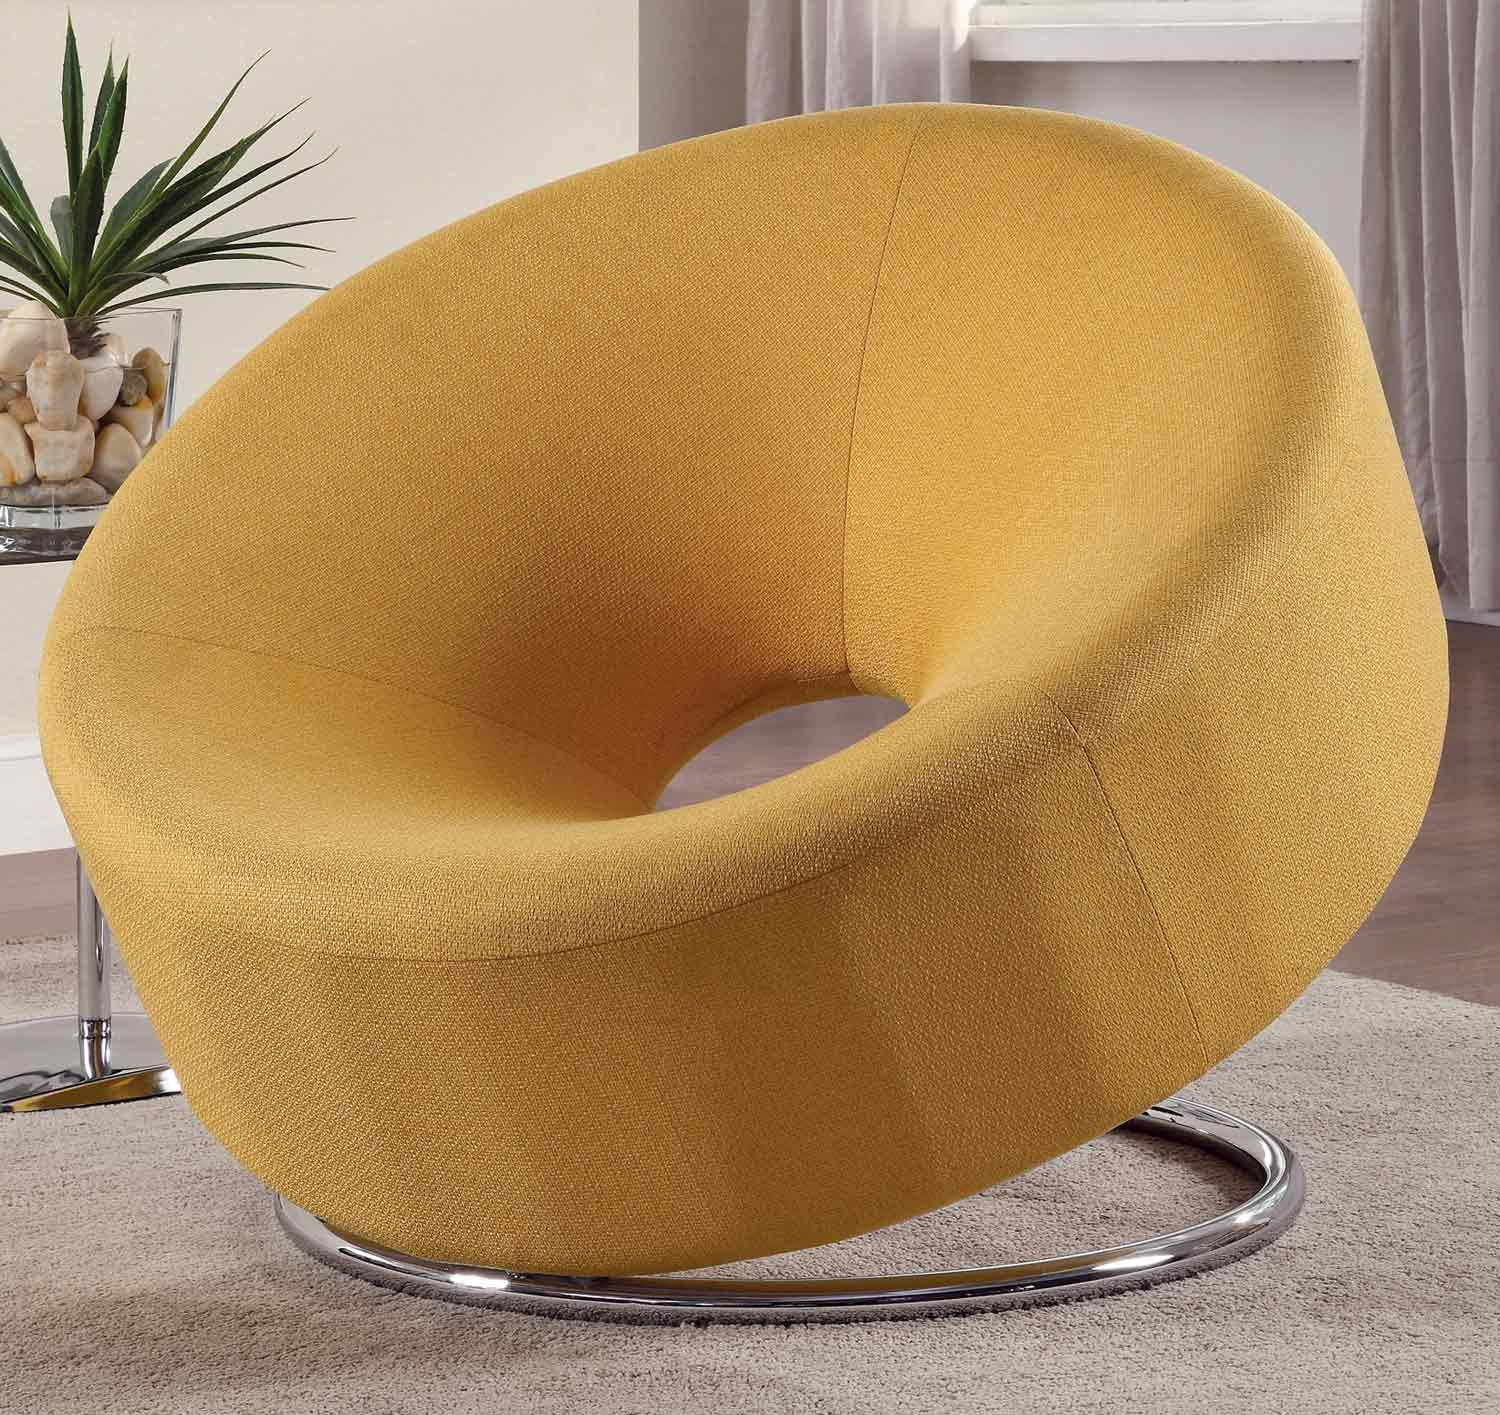 Coaster 902251 Accent Chair - Yellow